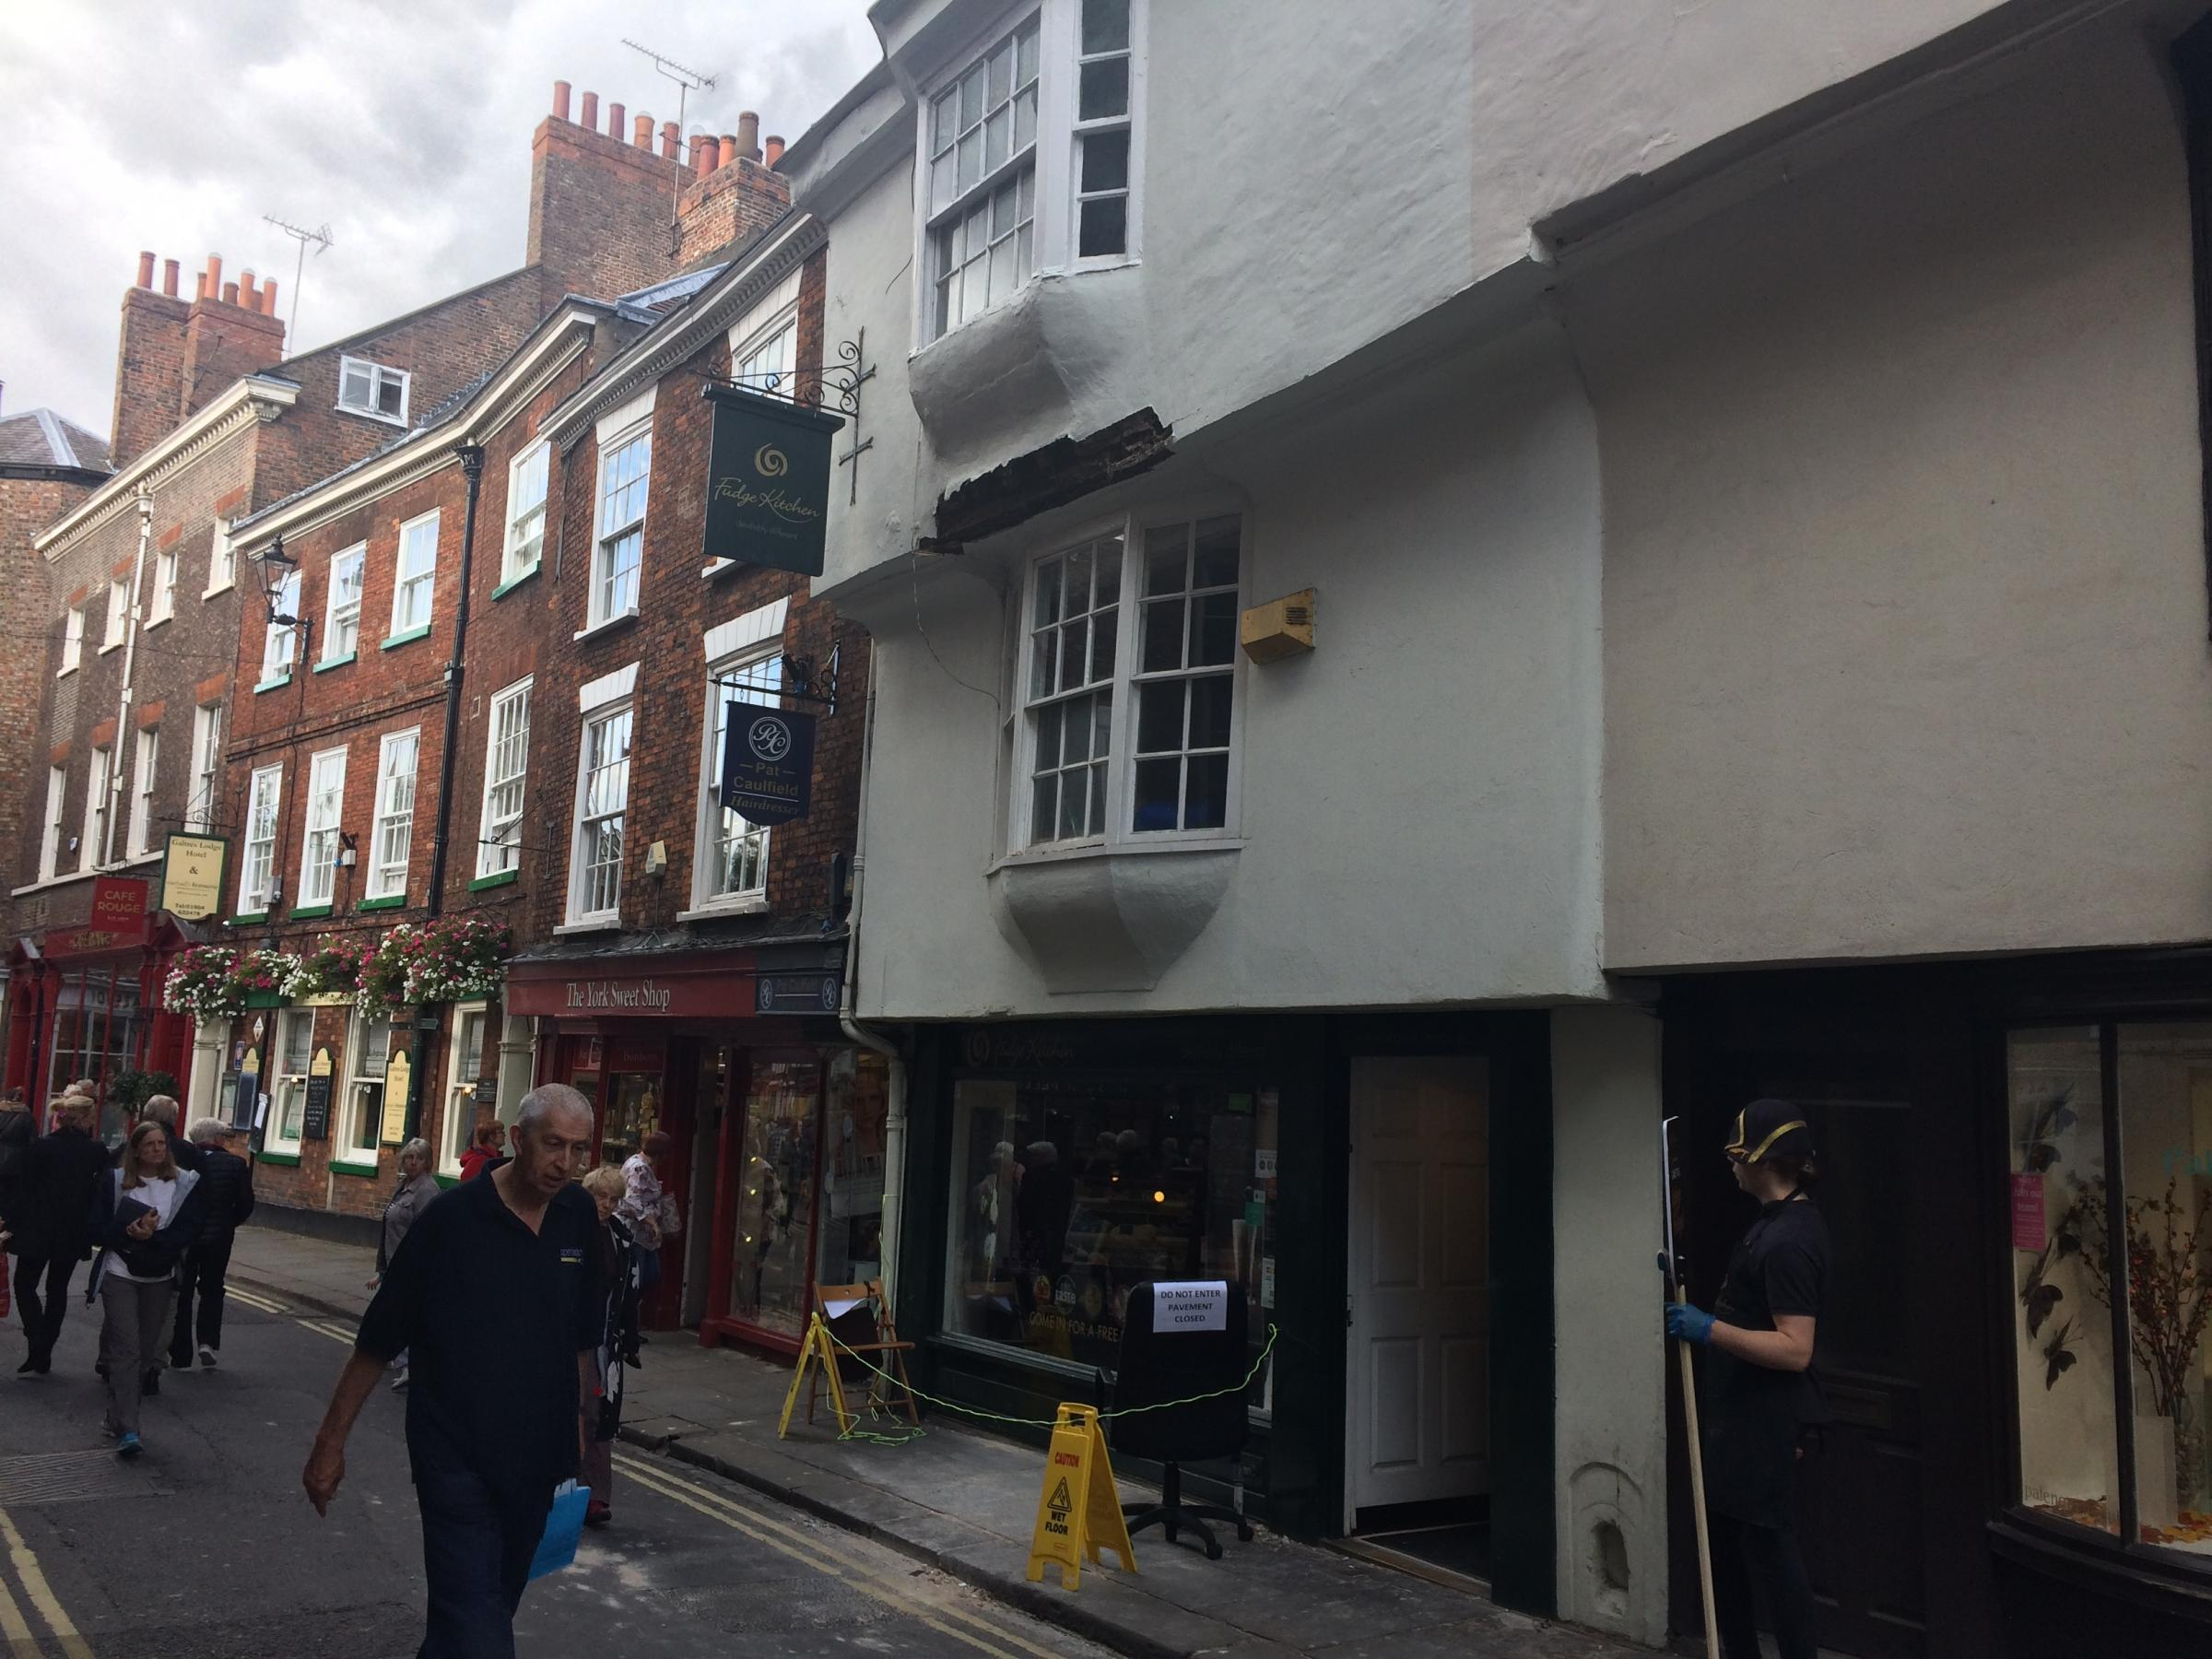 The Fudge Kitchen on Low Petergate